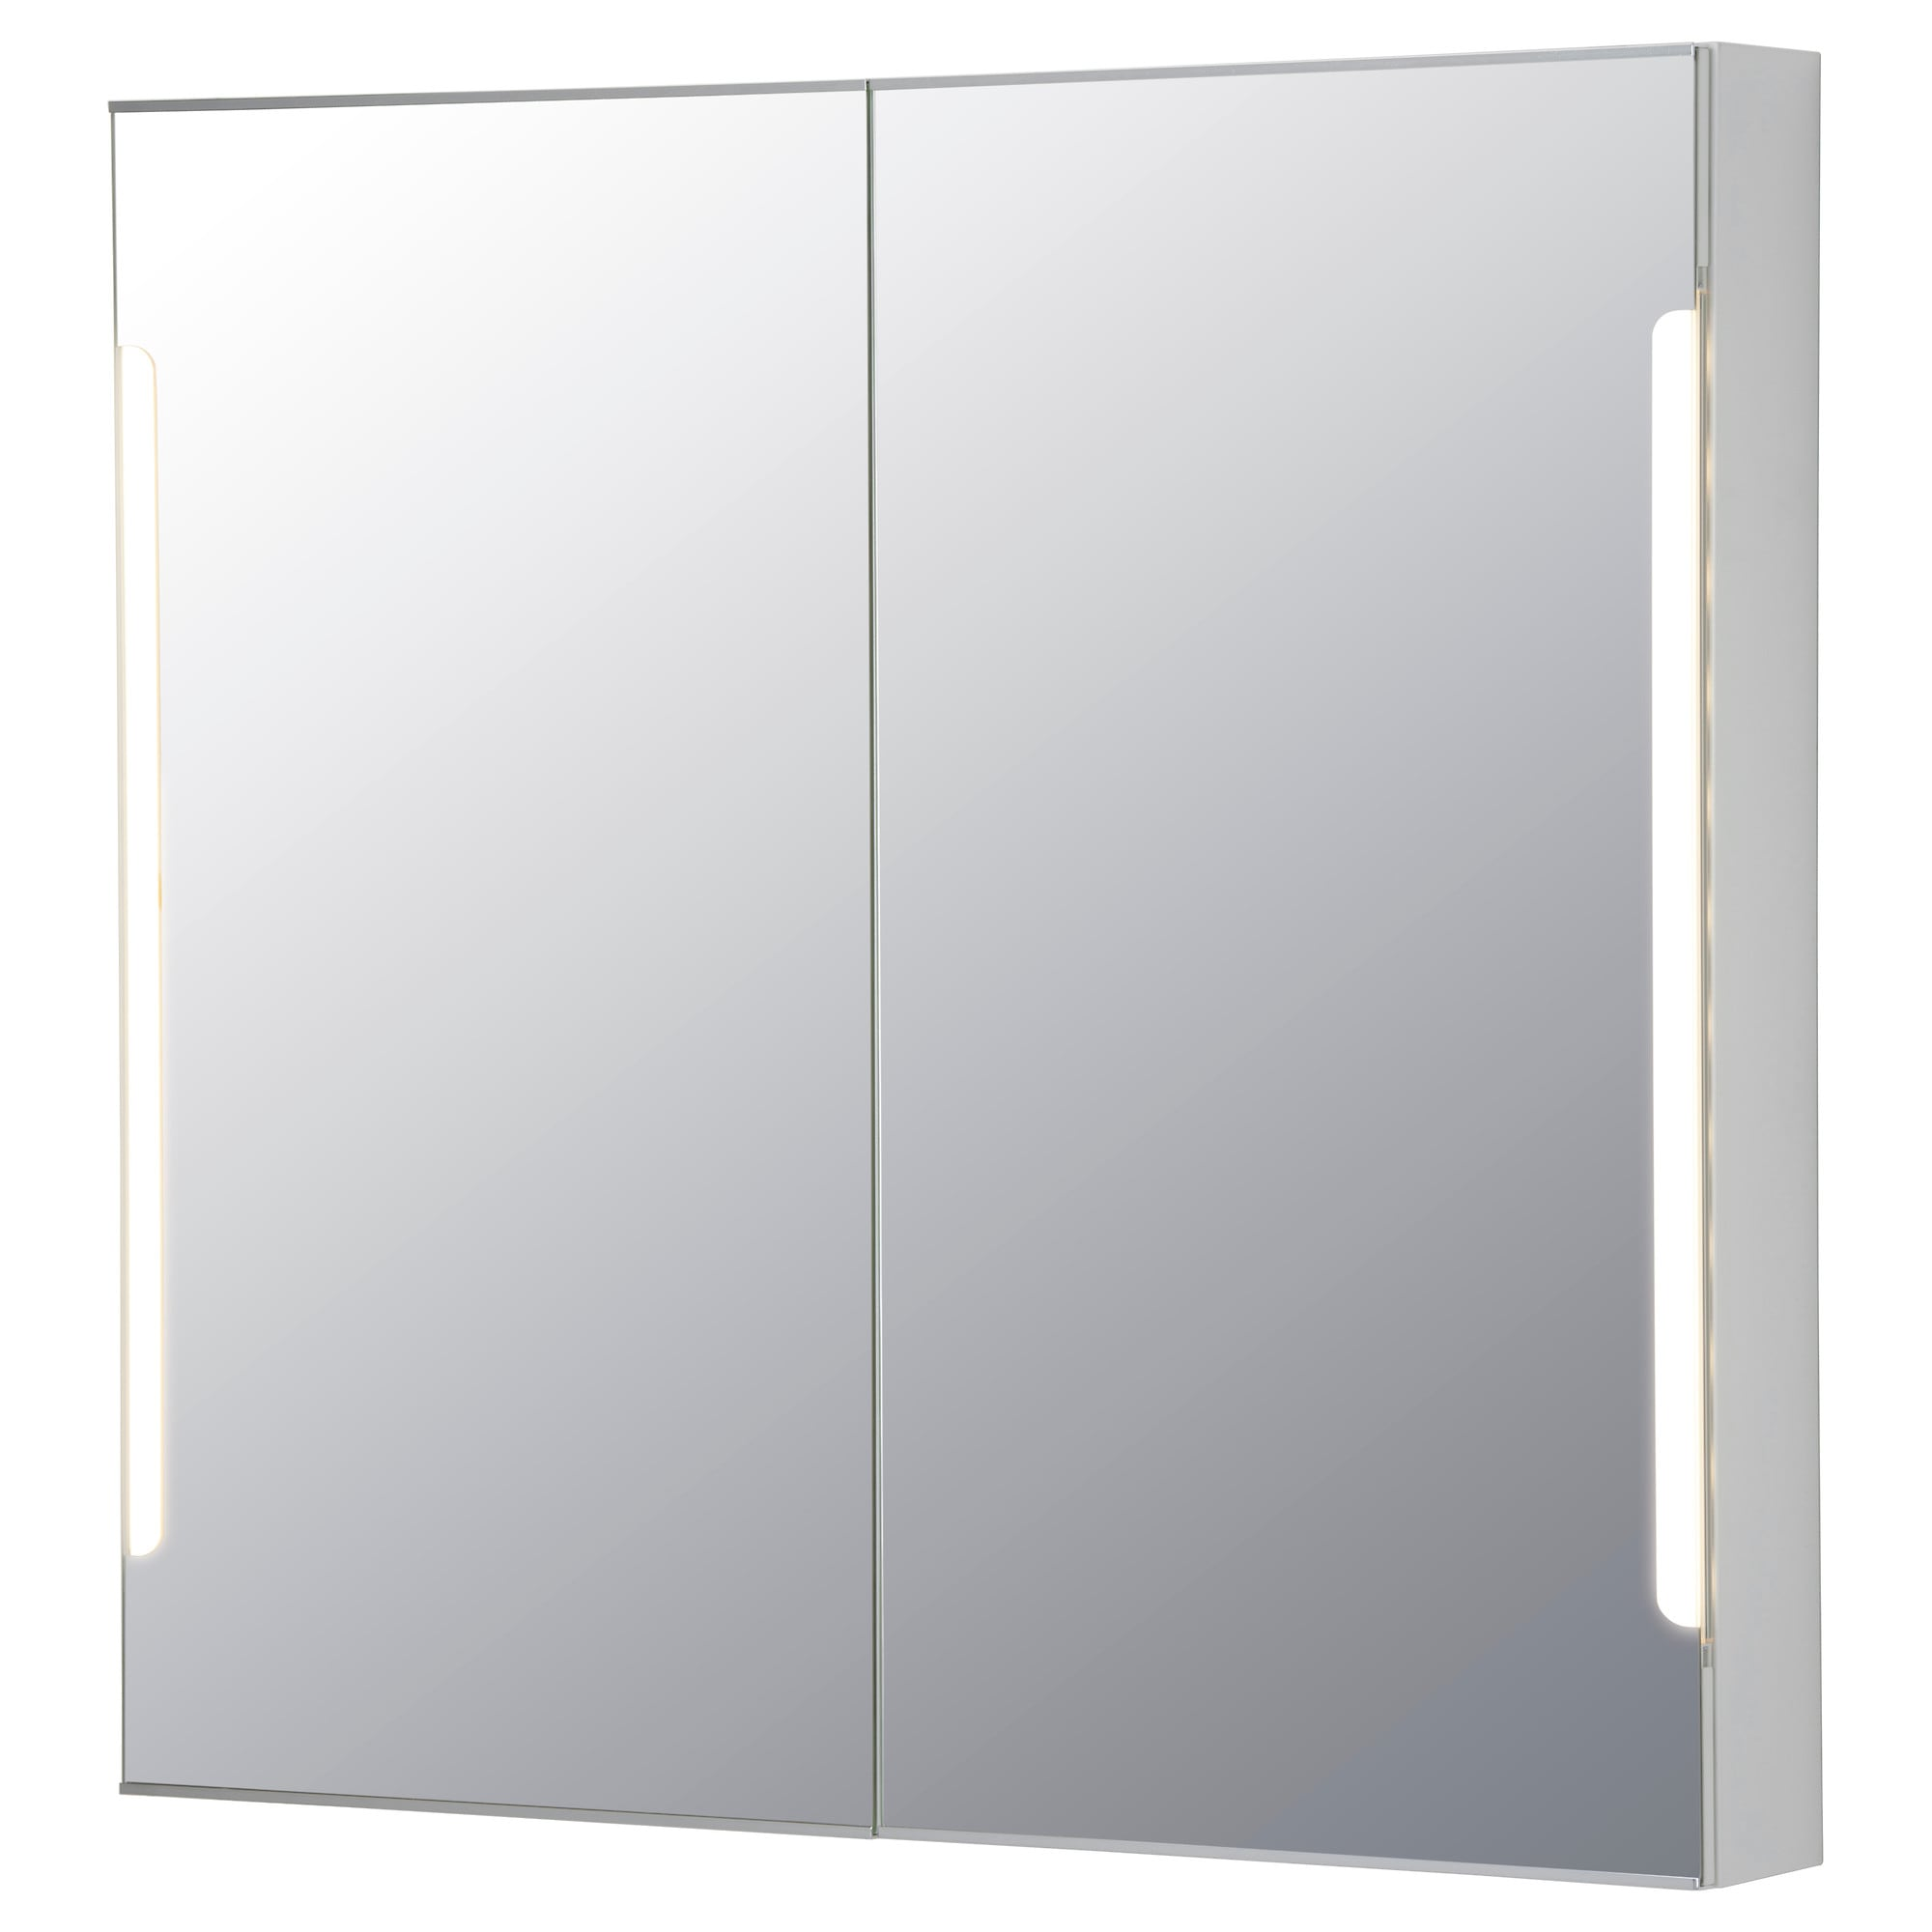 Medicine cabinet with side lighting - Medicine Cabinet With Side Lighting 34